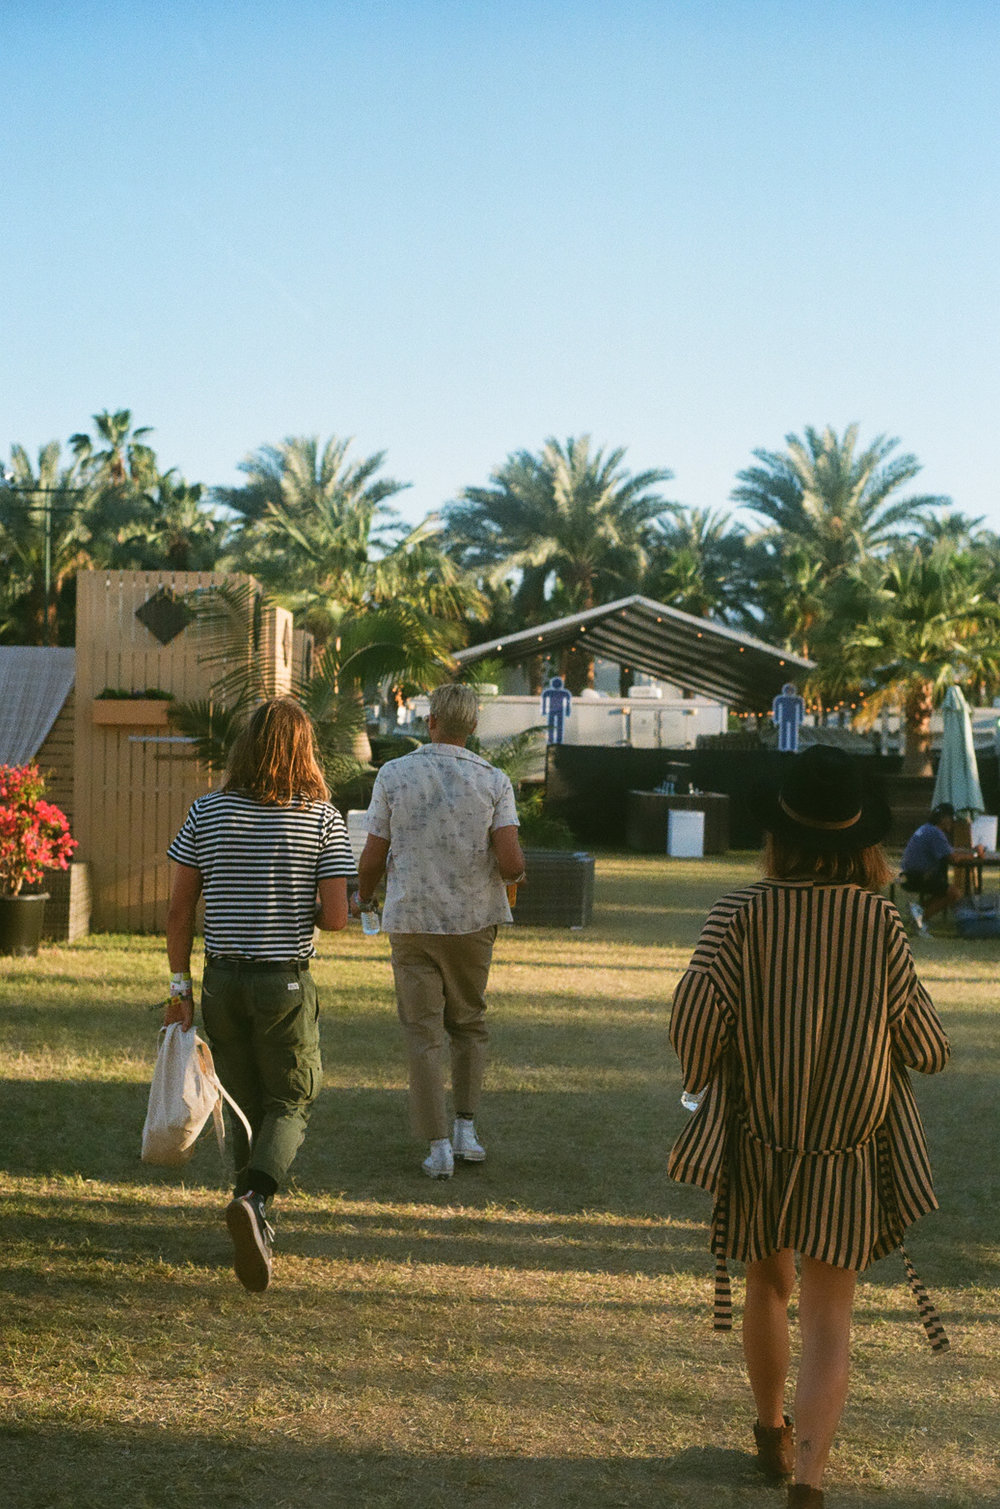 PLNT_MAG_COACHELLA_PHOTOS_23.JPG